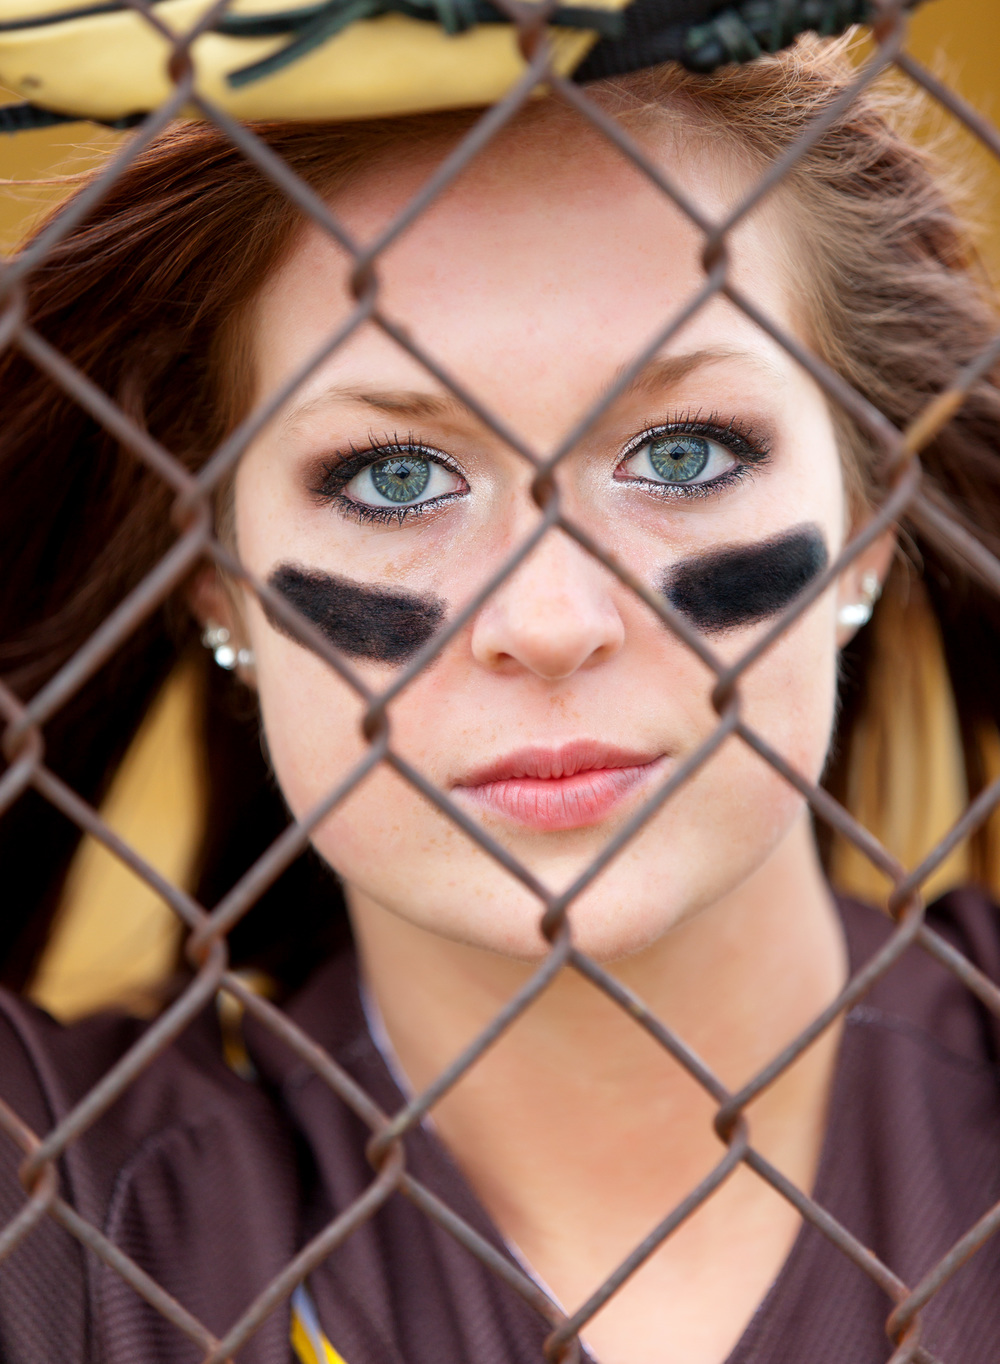 blonde senior girl softball player with blue eyes and eye black behind a chain link fence in Apple Creek, Ohio